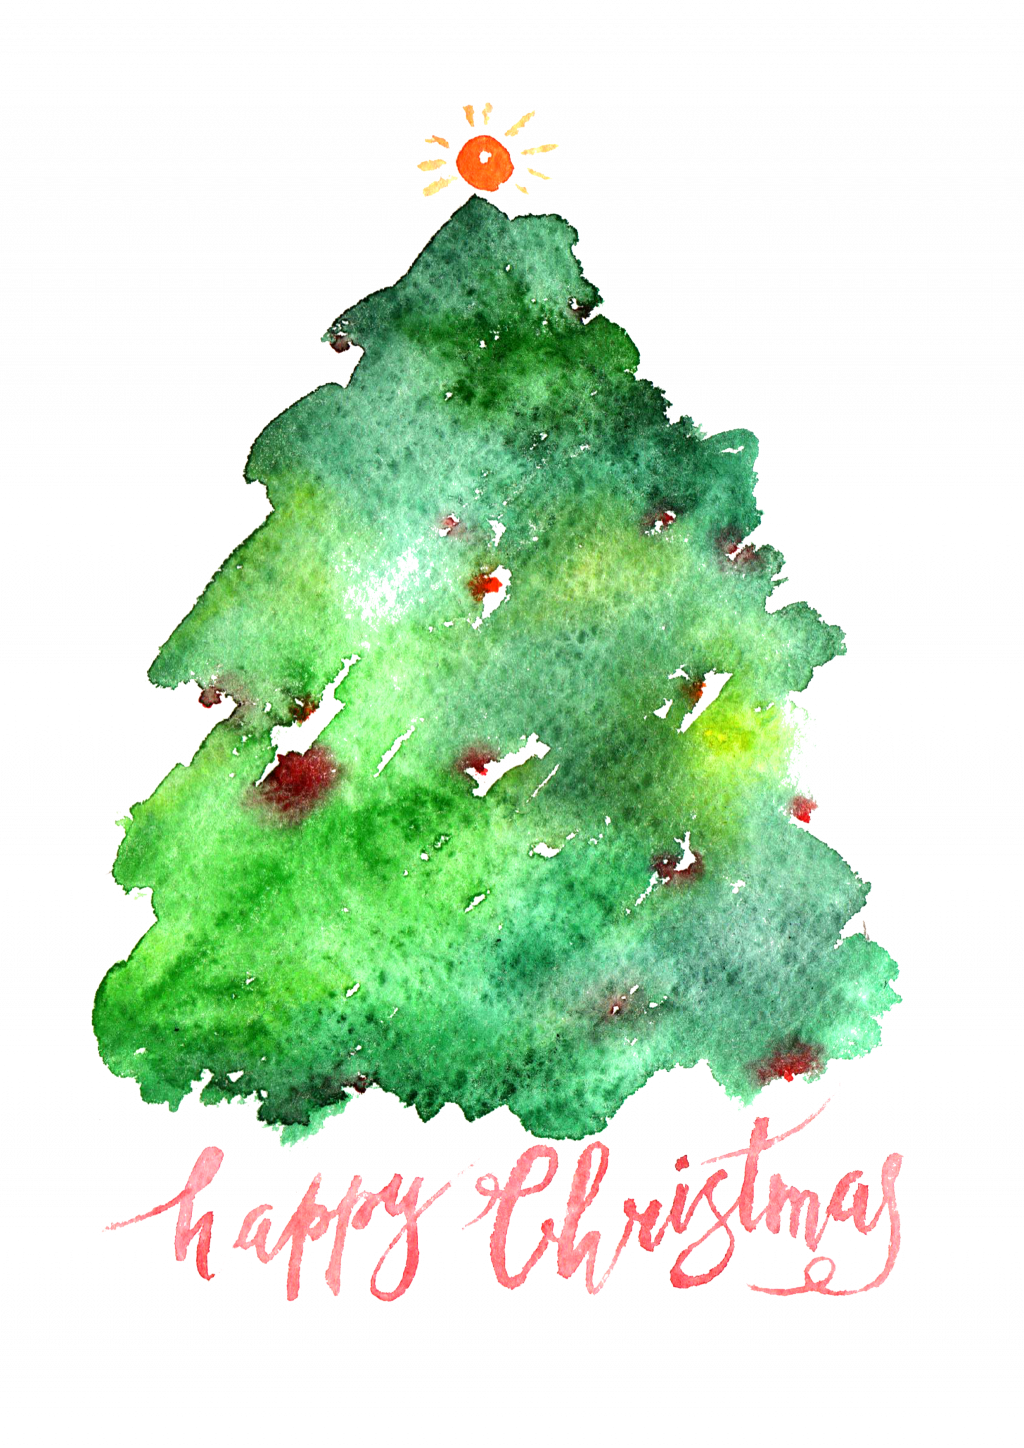 Santa Claus Christmas Tree Watercolor Painting Simple - Watercolor Evergreen Christmas Tree (1024x1448), Png Download